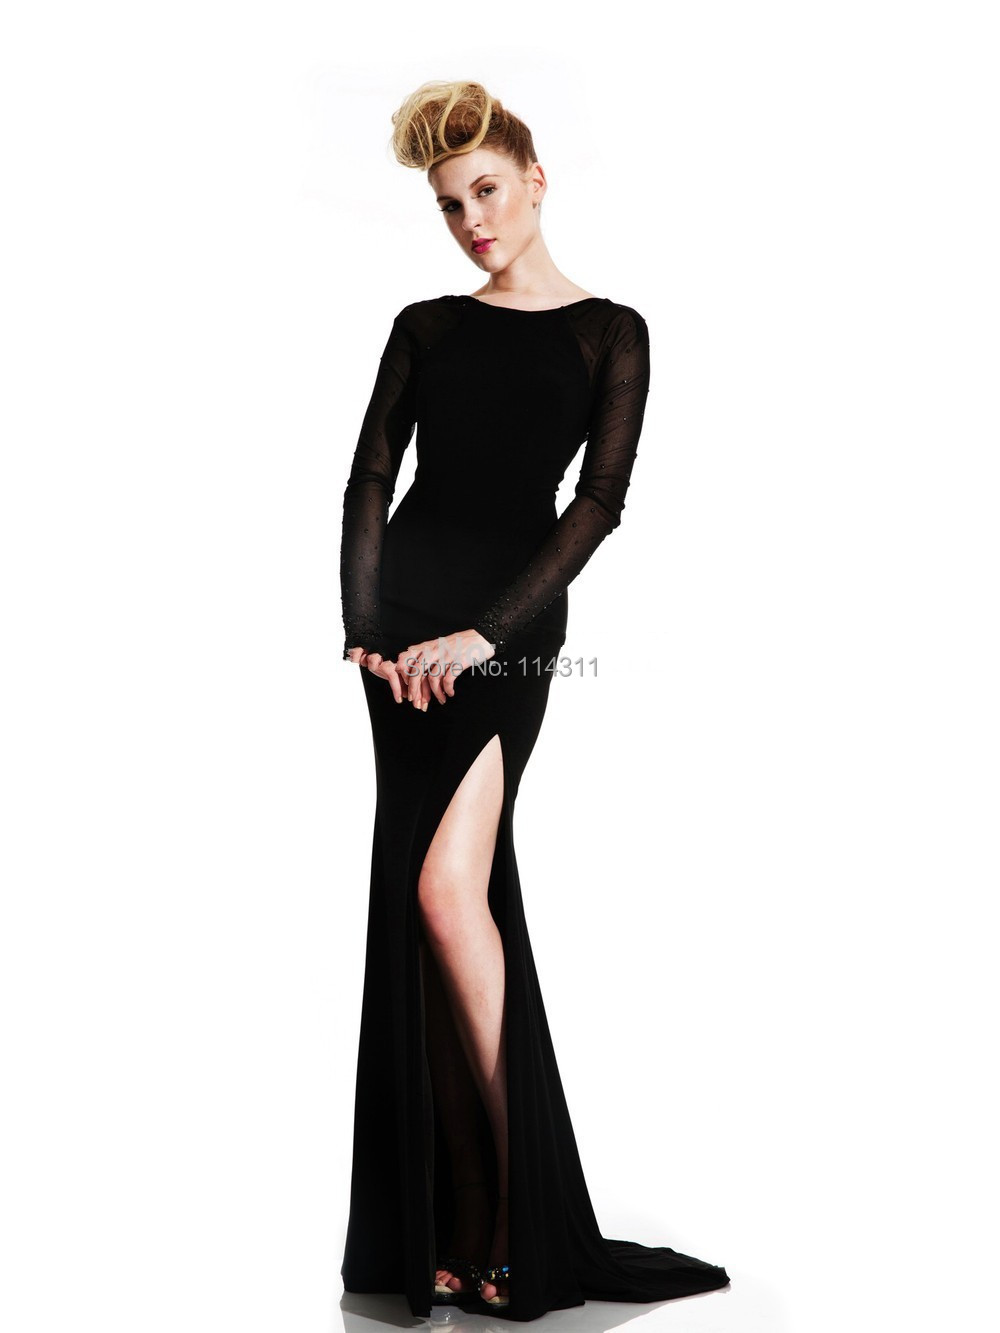 b58d82fd784 Black Sheer Long Sleeves Evening Dresses 2016 Sexy High Slit Jersey Tulle  Sweep Train Women Formal Prom Backless Gowns Vestidos-in Evening Dresses  from ...